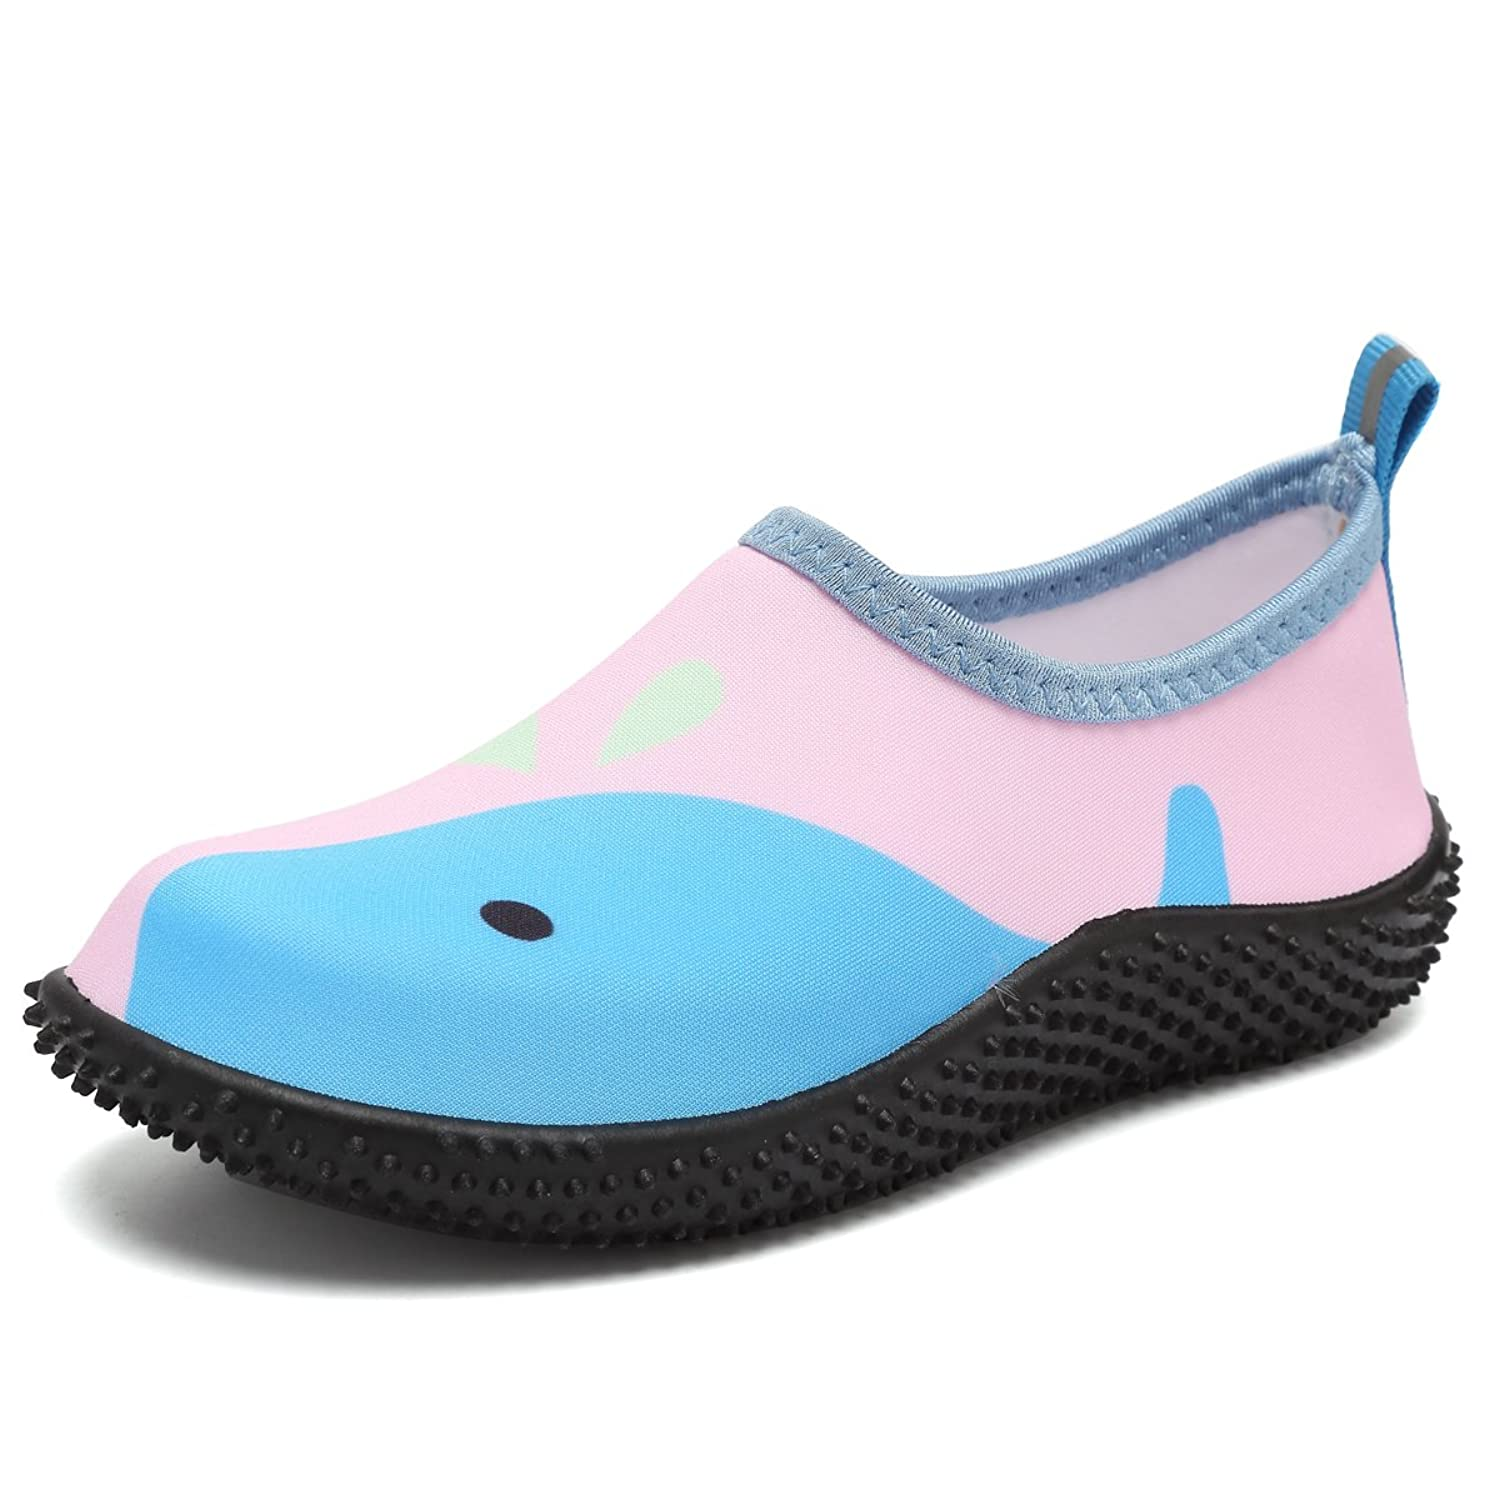 CIOR FANTINY Boys & Girls Water Shoes